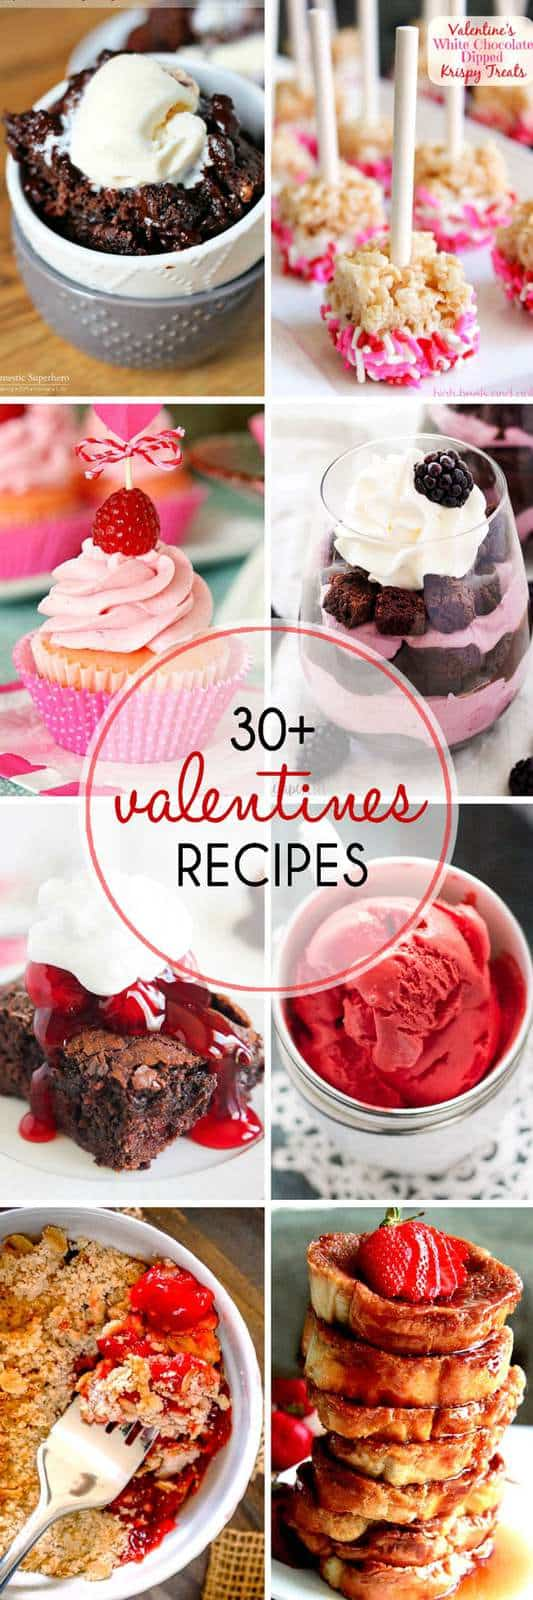 30 of the best valentine 39 s day recipes cupcakes kale for Best valentines day meals